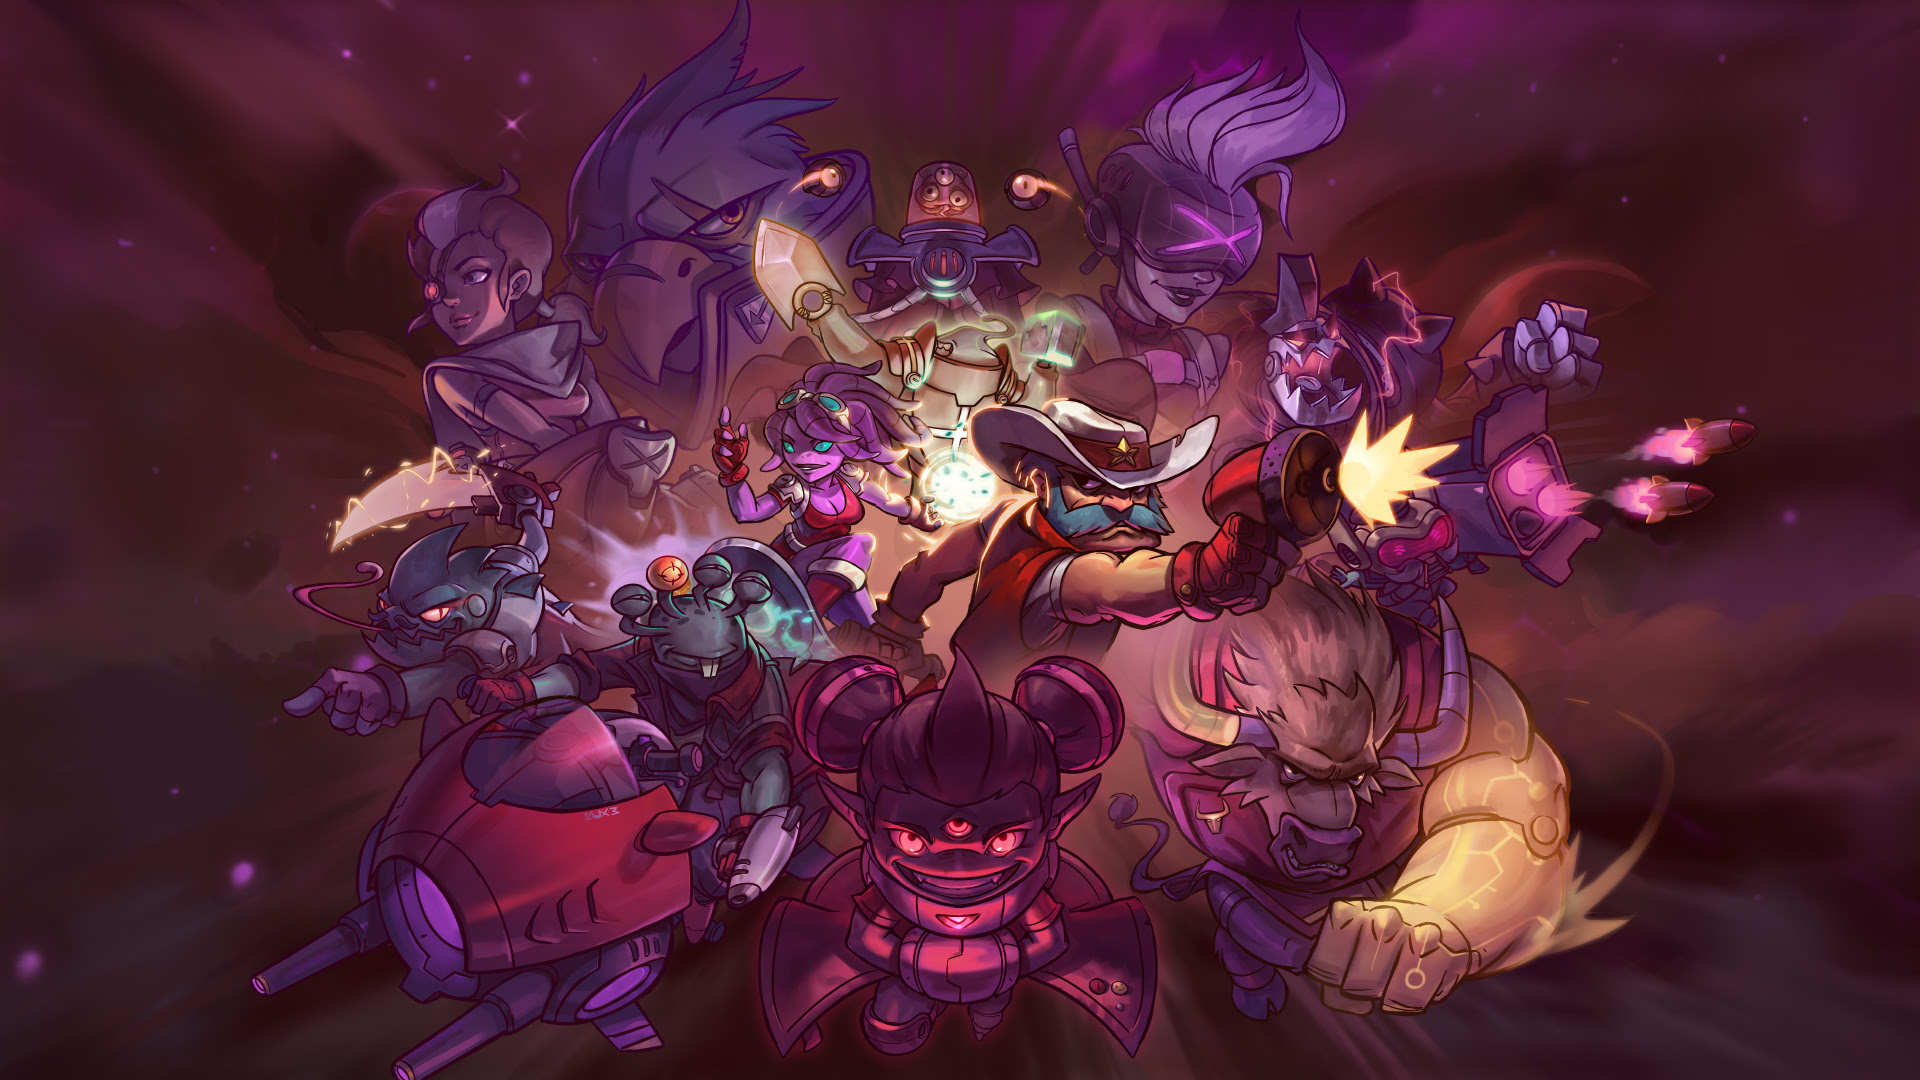 Awesomenauts is going free-to-play at last screenshot